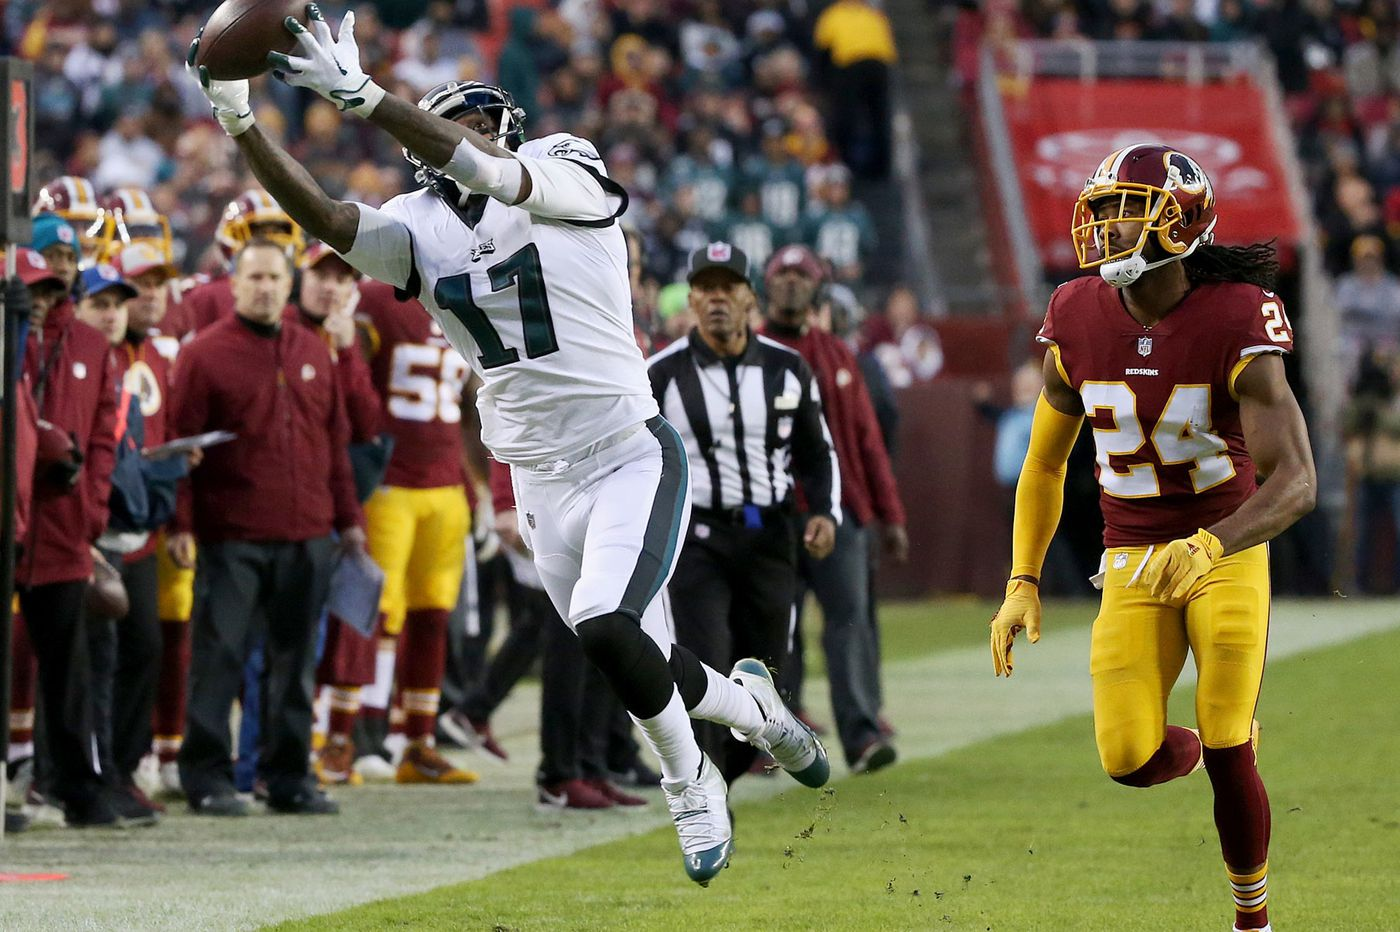 eagles 24 washington 0 after dominant win birds are in playoffs